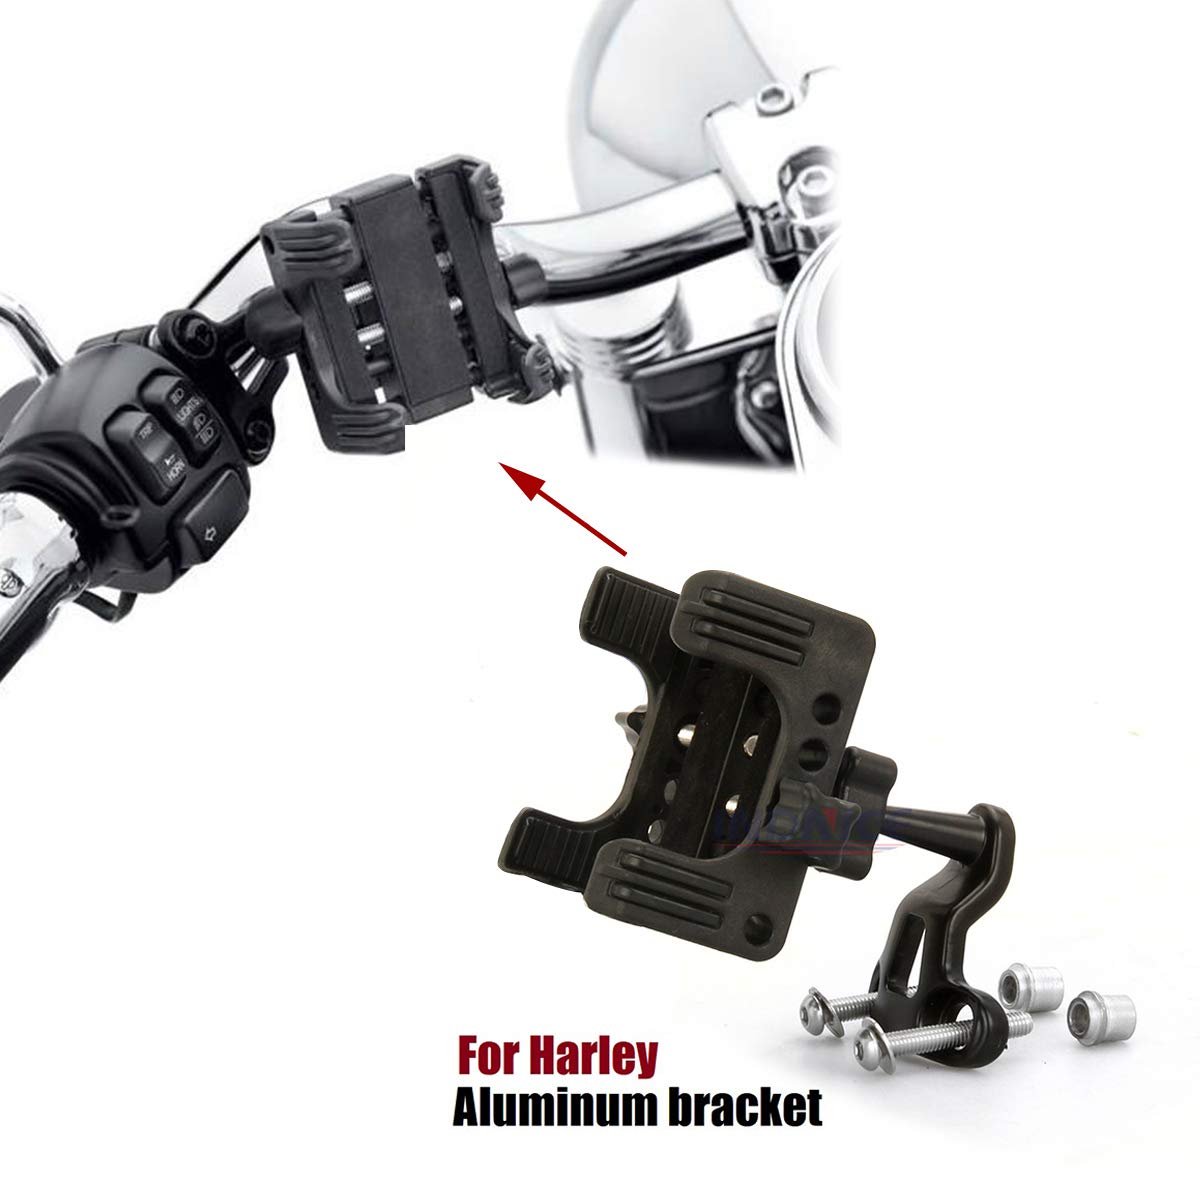 For harley Handlebar Cell Phone Holder GPS MP3 Bracket #76000537 and #76000549 Dyna softail Road King Street Glide sportster tri CVO